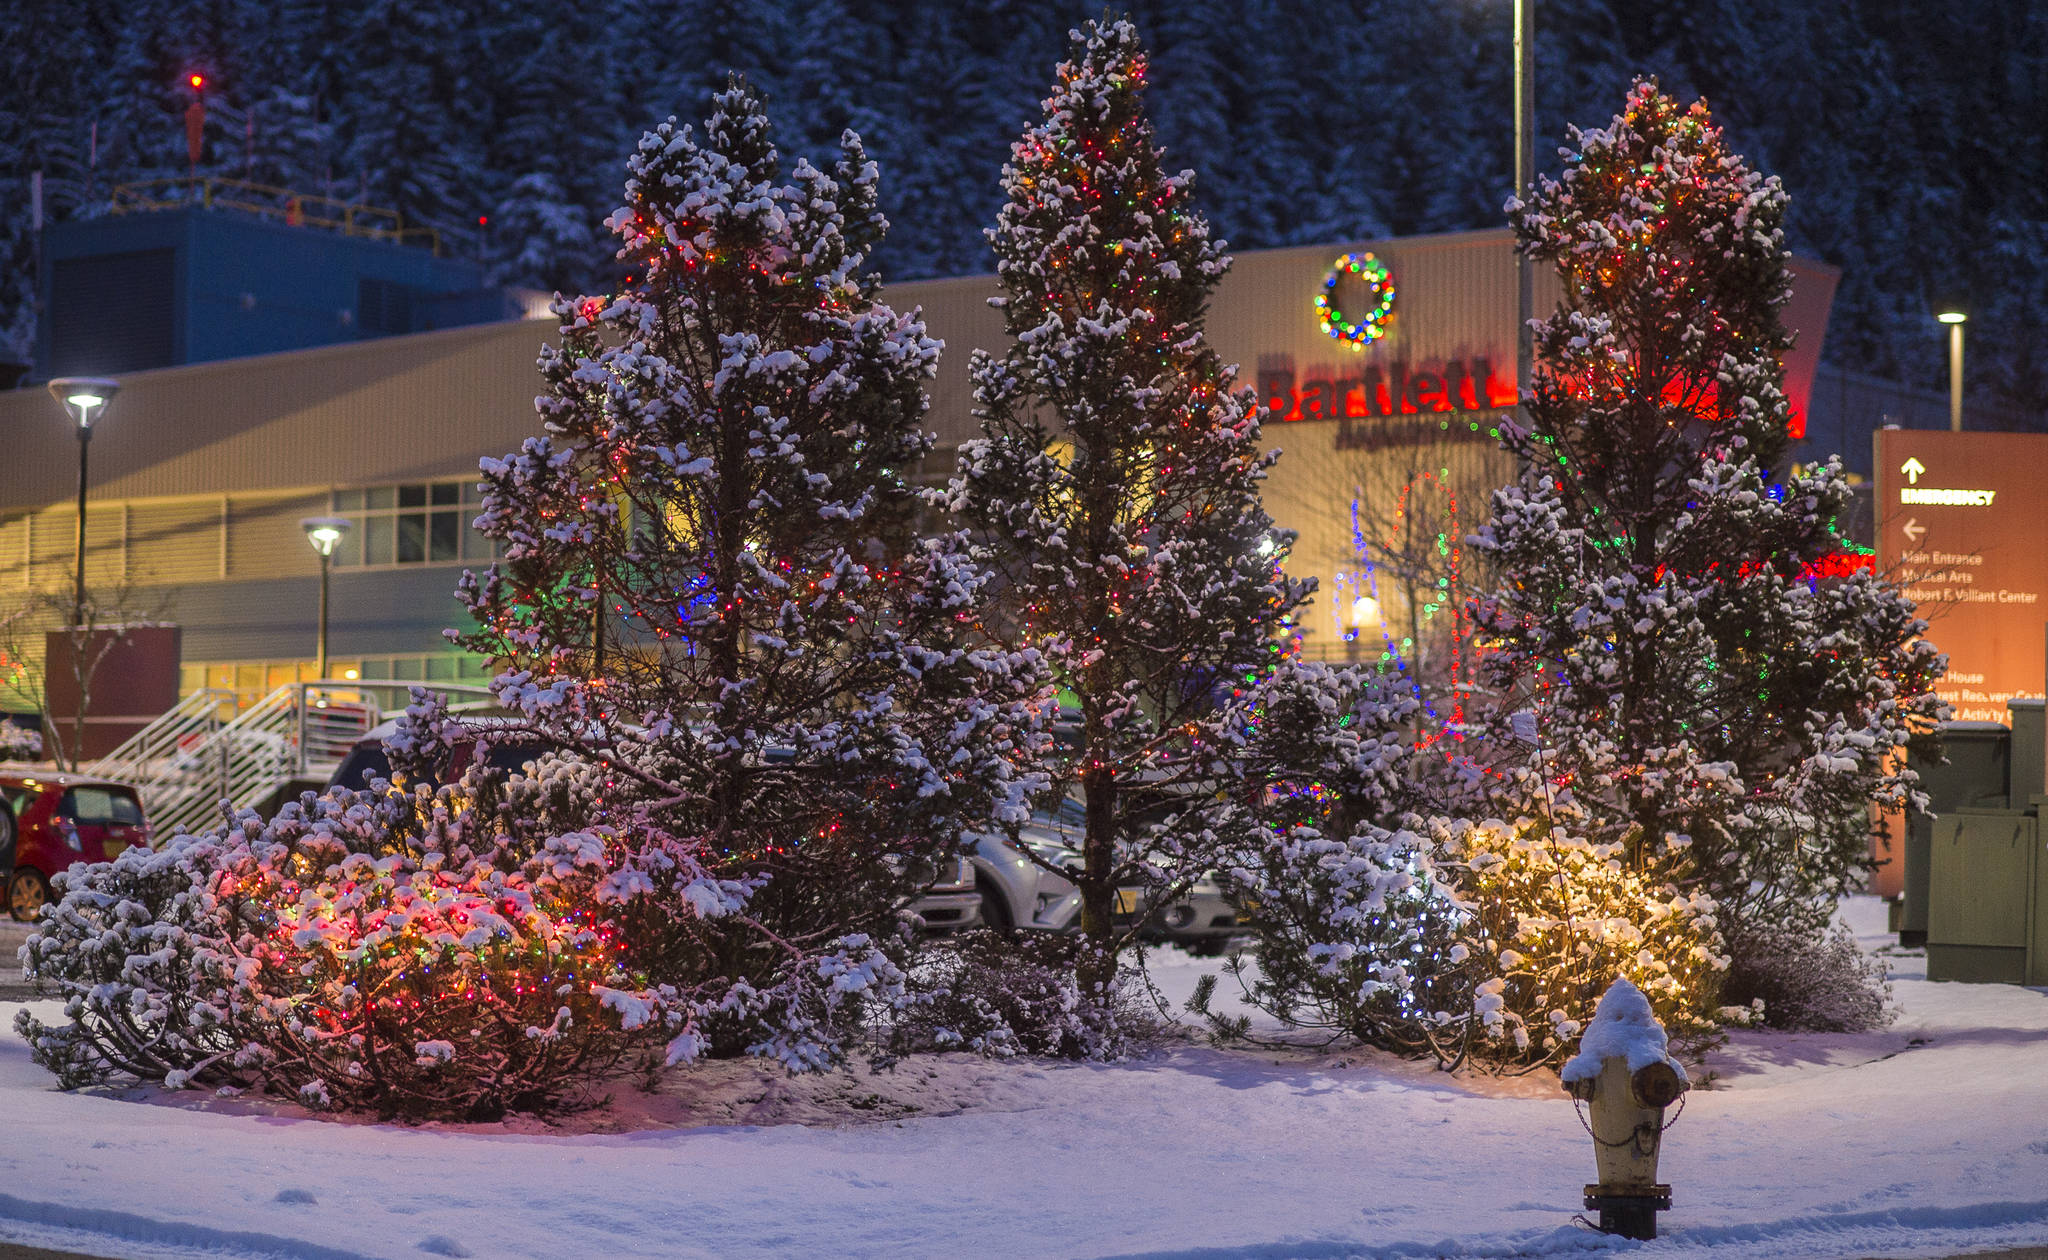 Christmas lights decorate the entrance to Bartlett Regional Hospital in December 2018. (Michael Penn | Juneau Empire File)